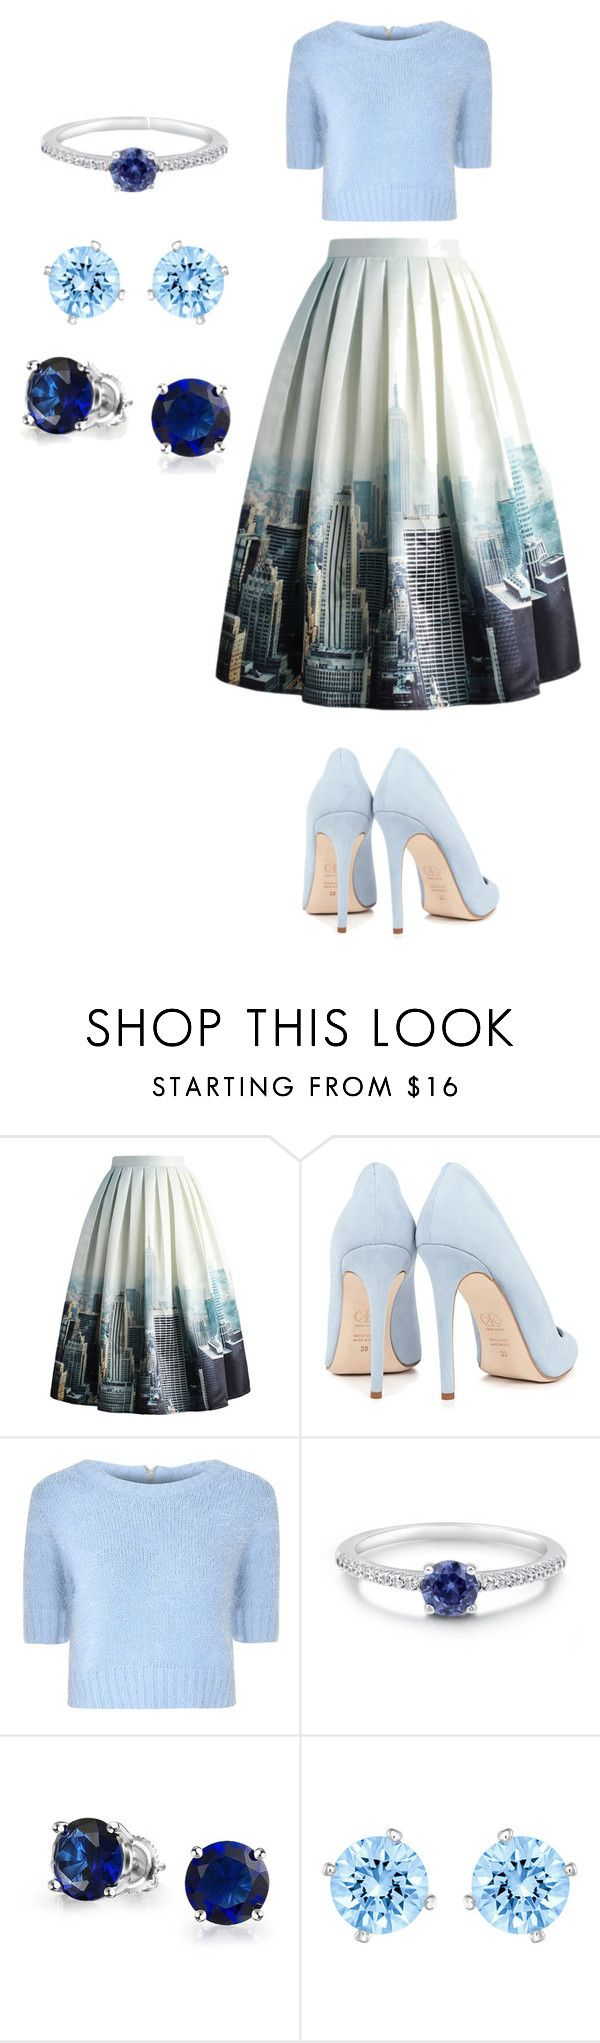 """""""City"""" by preemiepeanut ❤ liked on Polyvore featuring interior, interiors, interior design, hogar, home decor, interior decorating, Chicwish, Dee Keller, Glamorous y BERRICLE"""